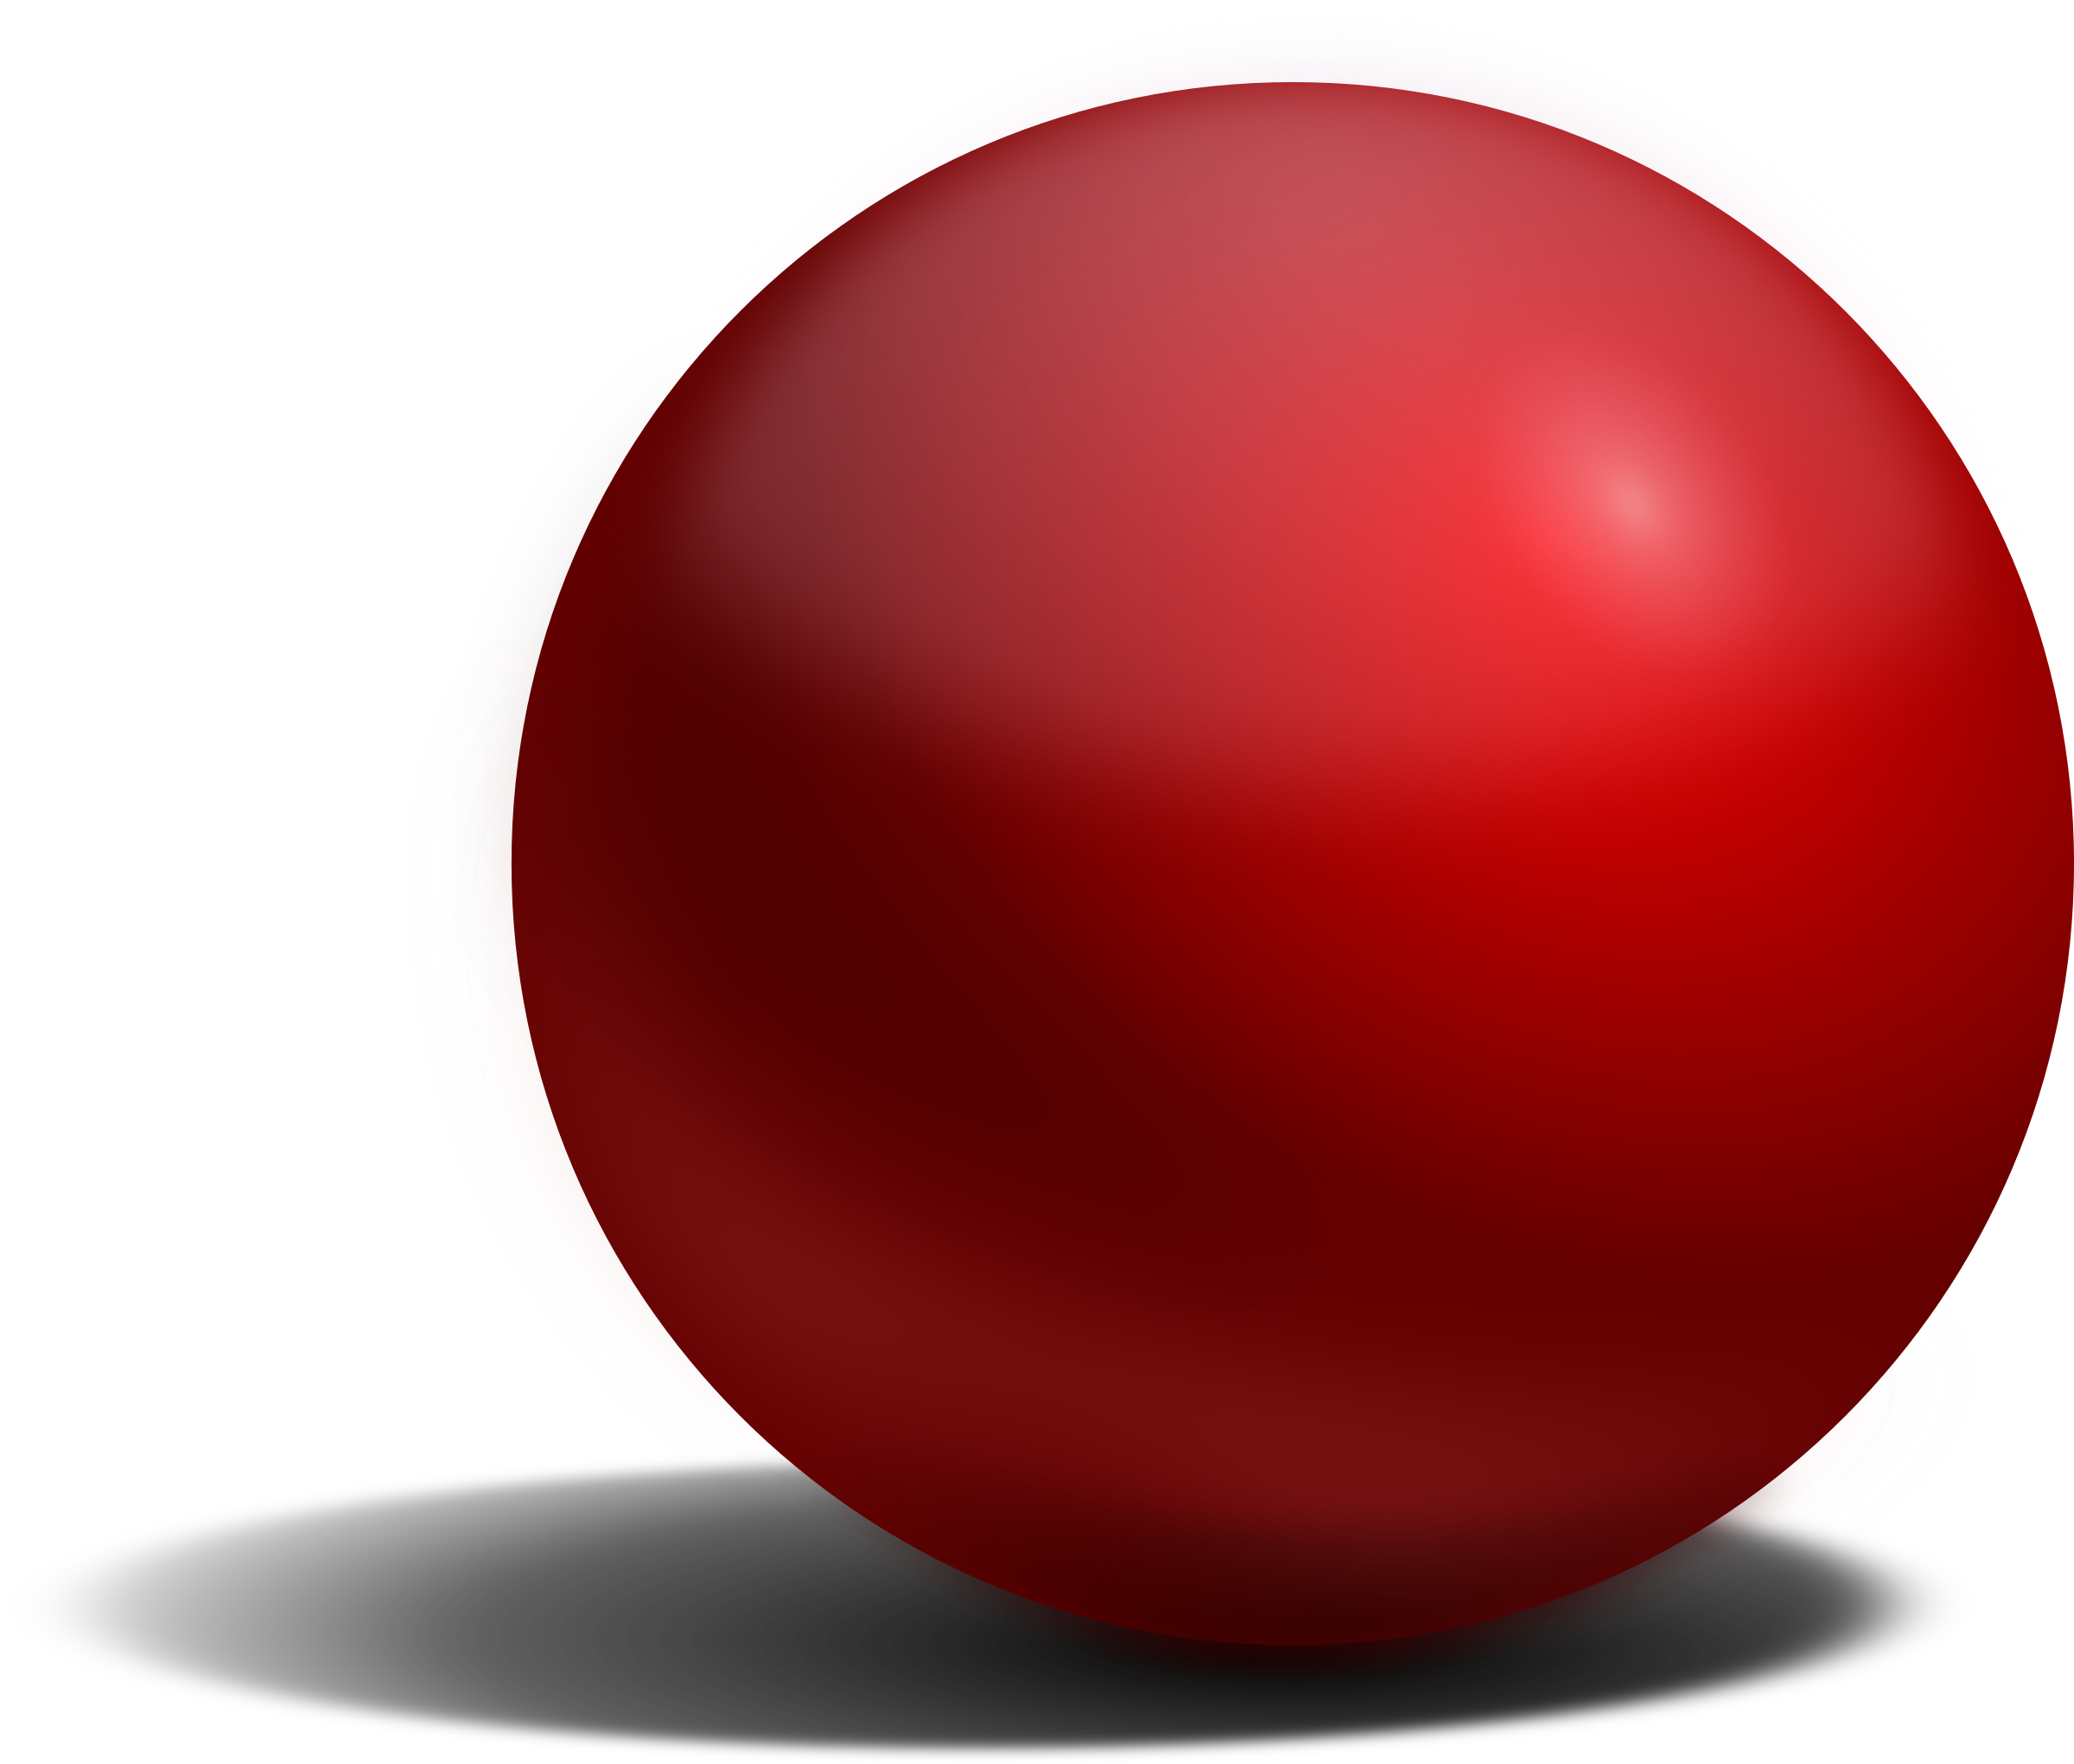 Clipart sphere study